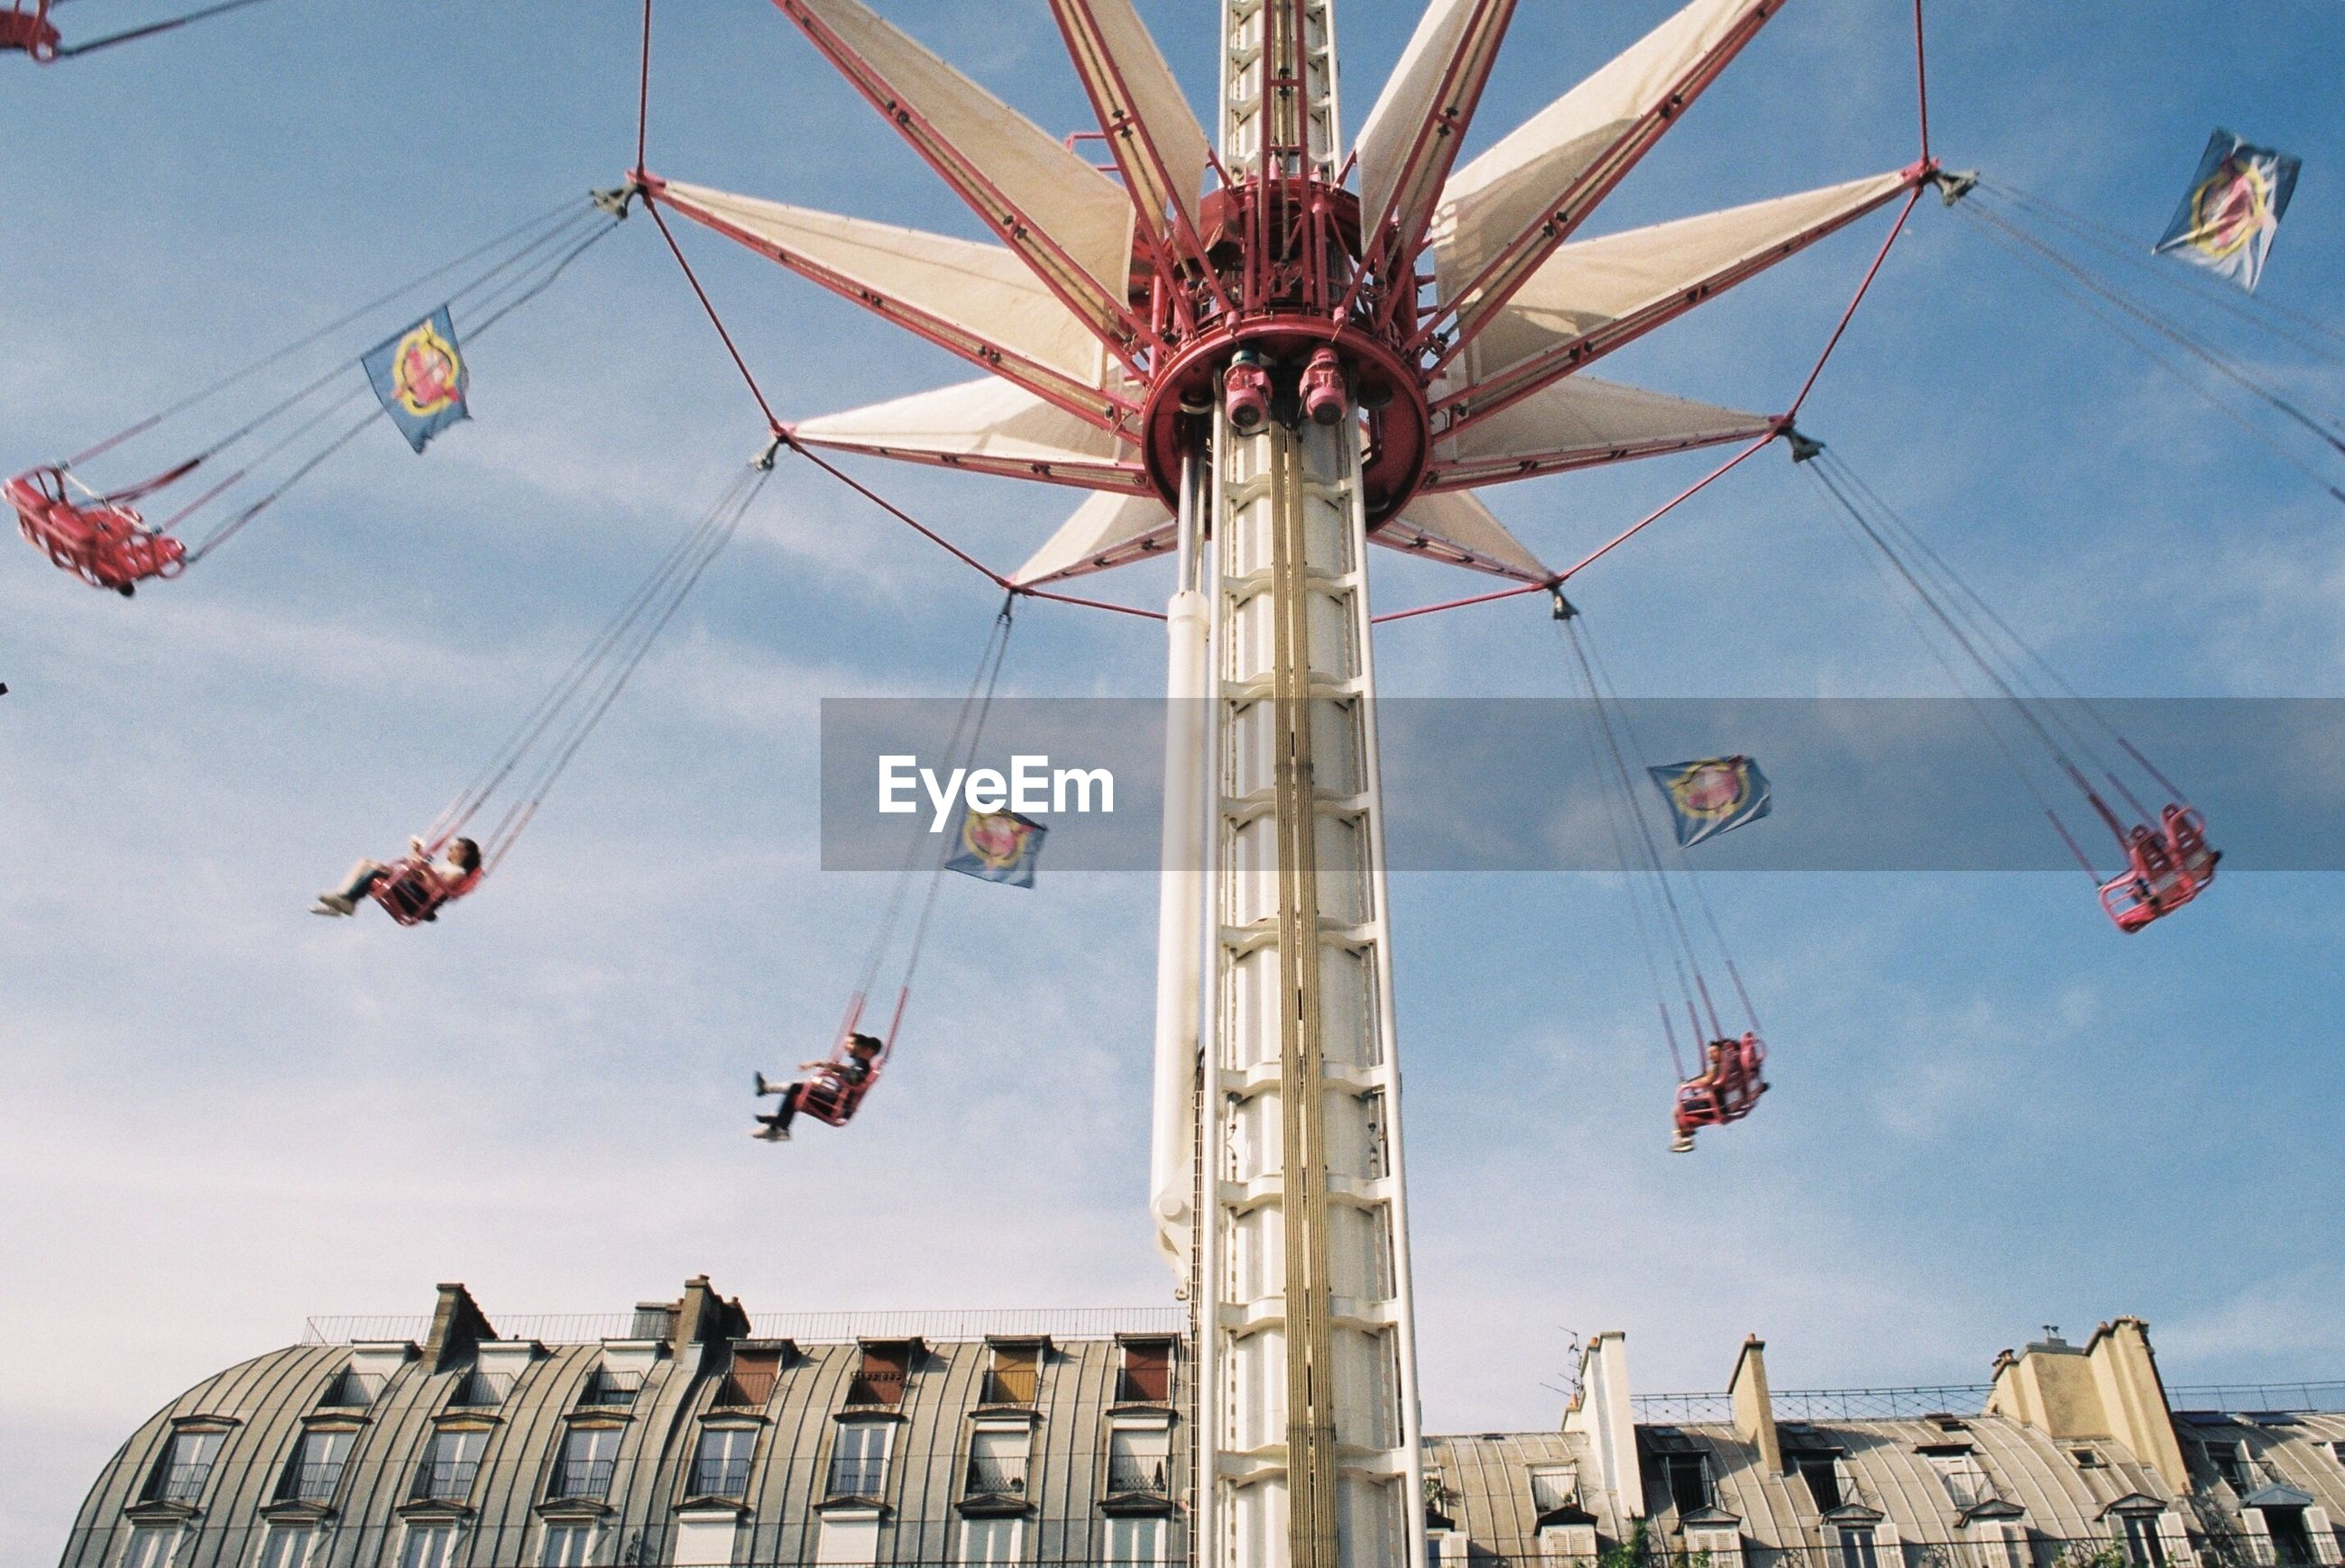 LOW ANGLE VIEW OF CAROUSEL AT AMUSEMENT PARK AGAINST SKY